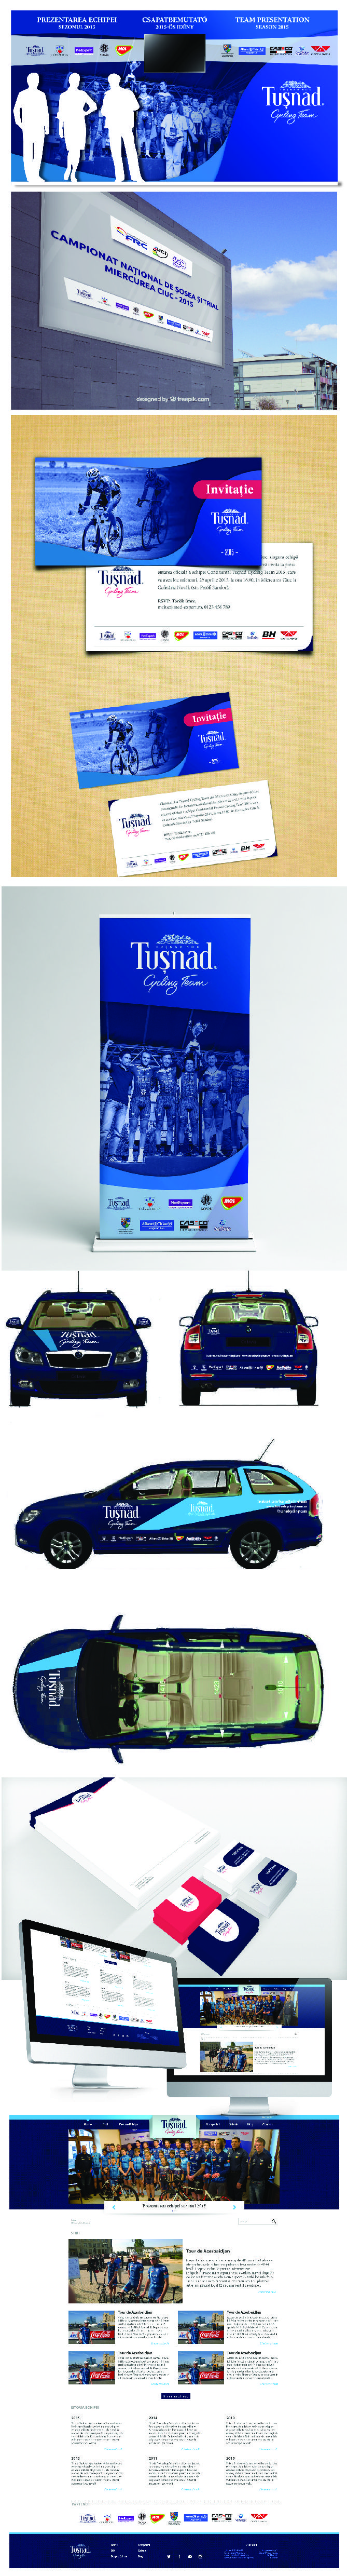 Jersey - Press wall - Outdoor banner - Invitation - Car sticker - Web design for Romania No.1 Continental Cycling Team